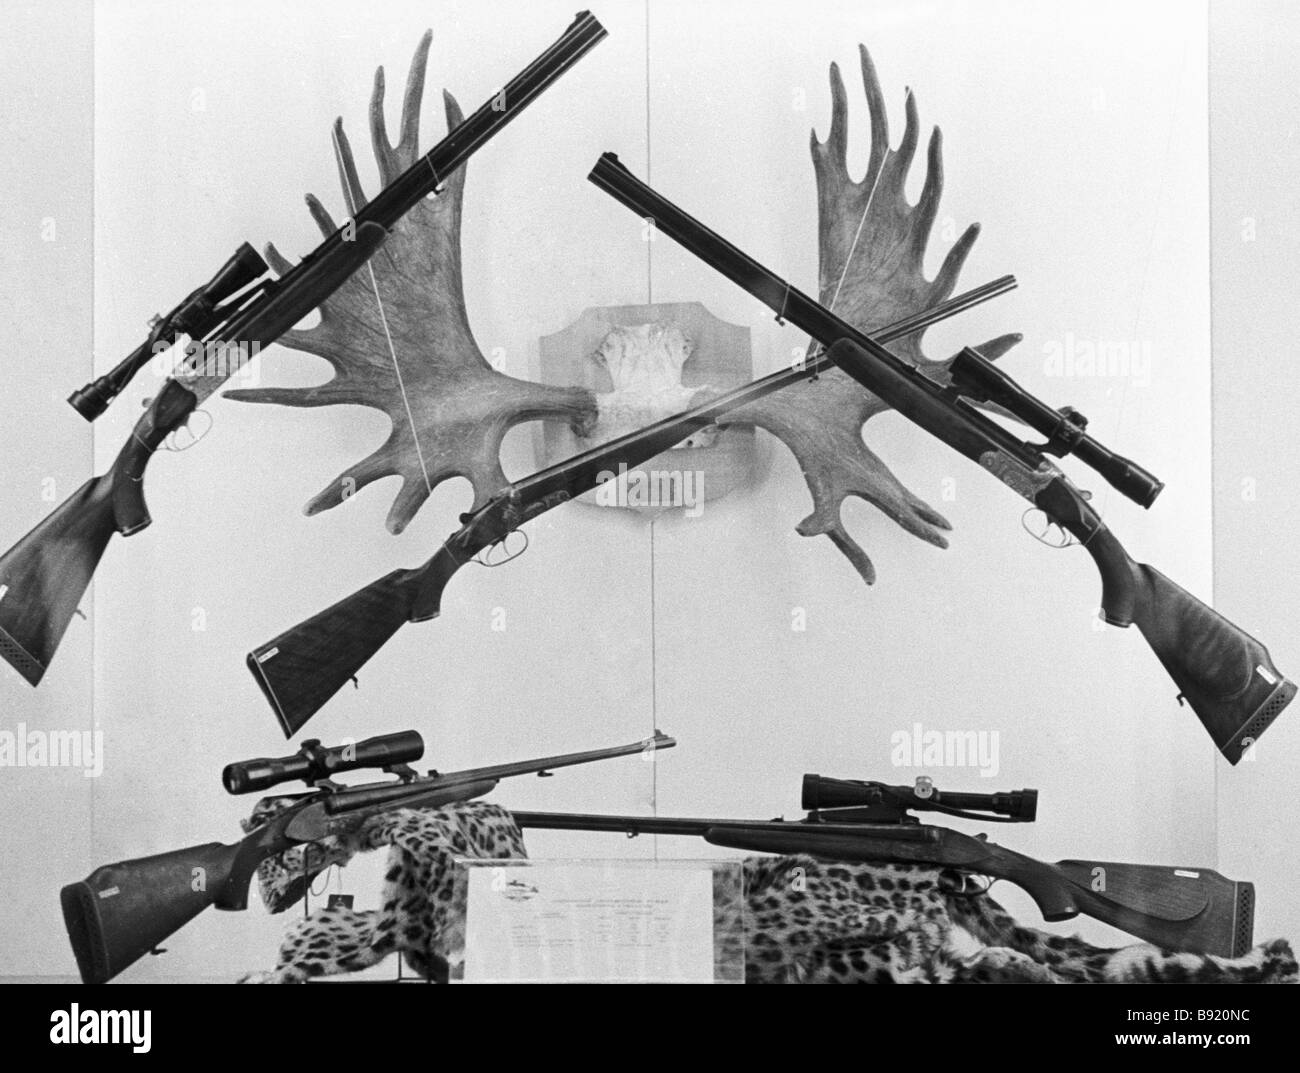 Display at the Hunting Weapons international exhibition - Stock Image